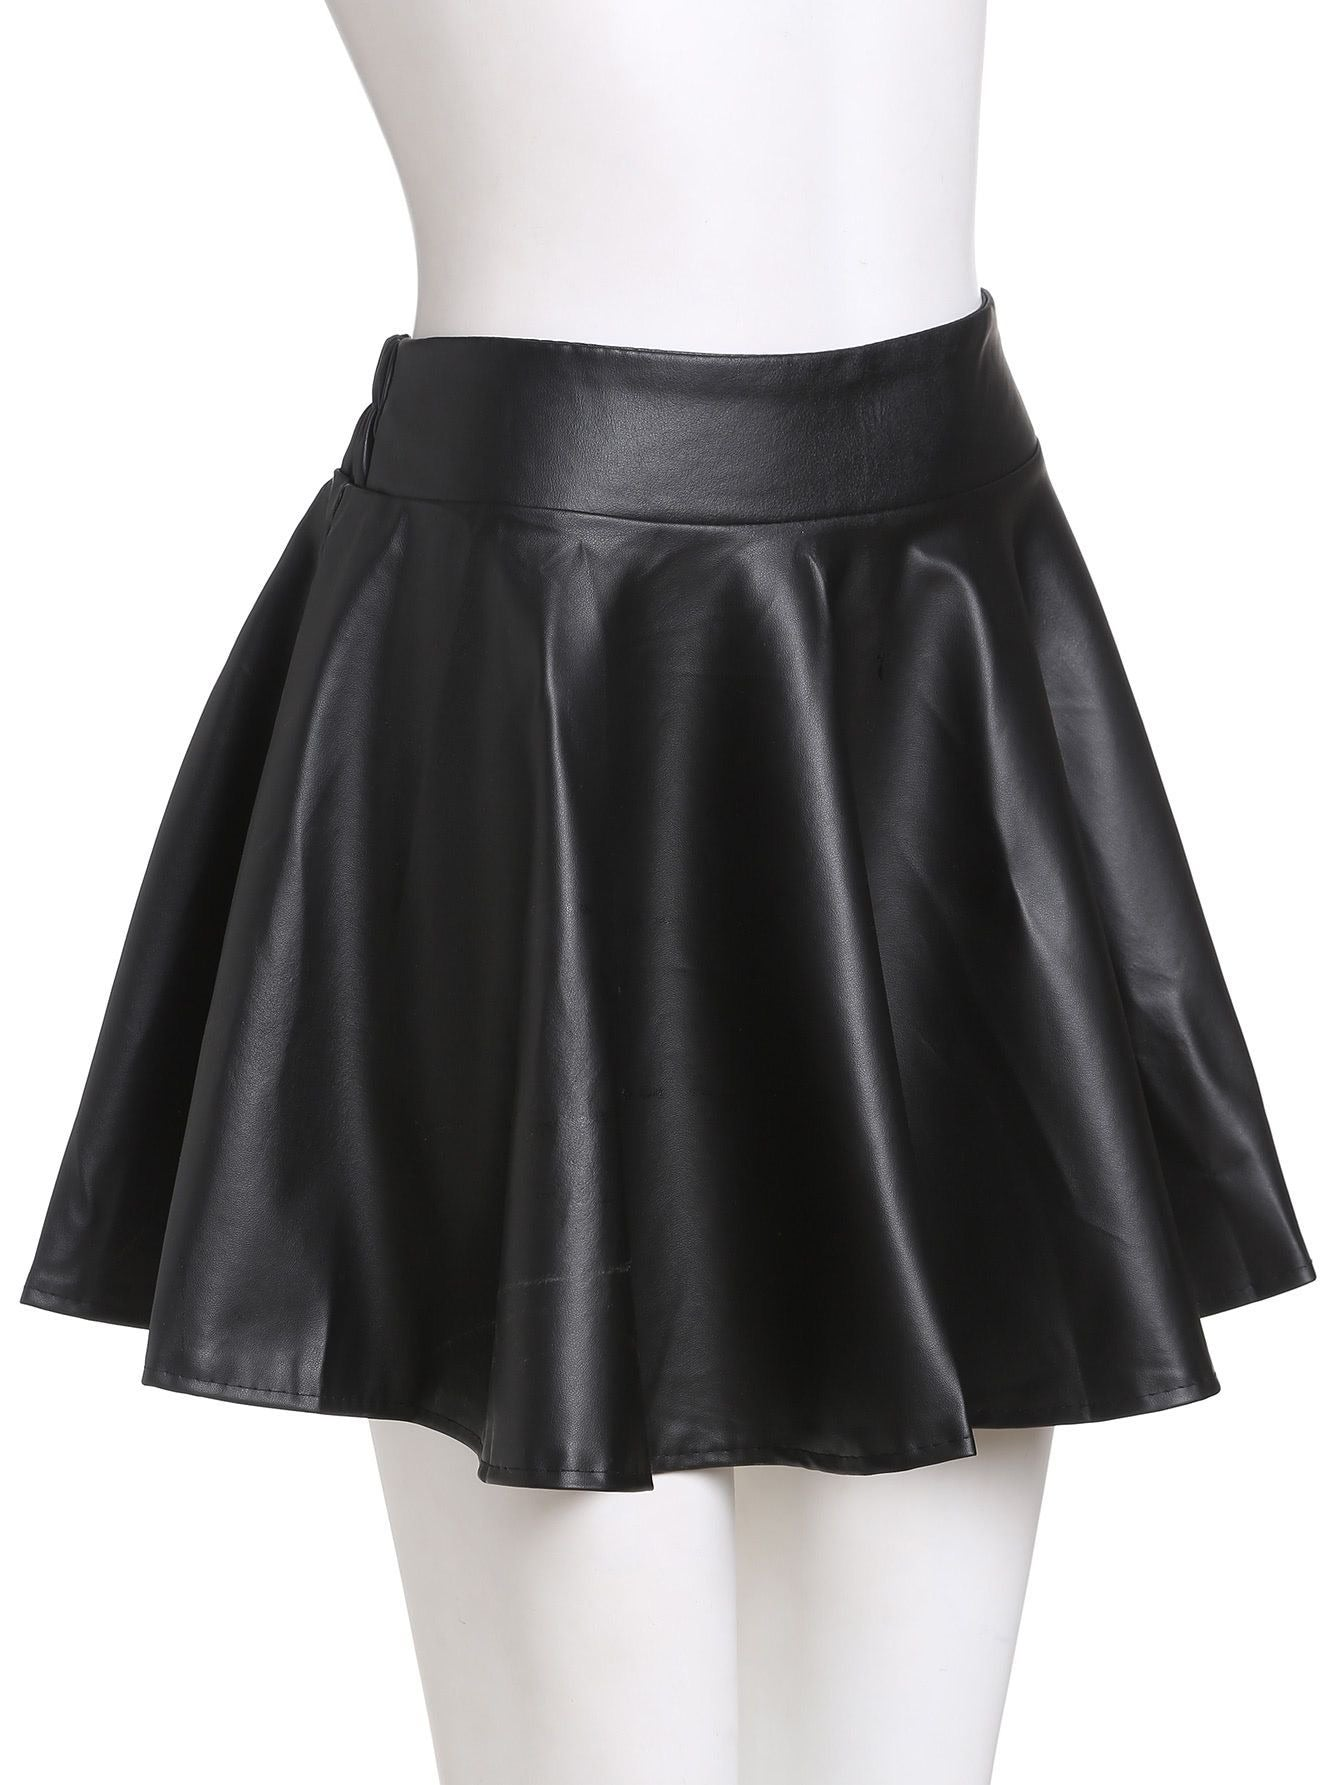 Red Lips Leather Skirt - Girls